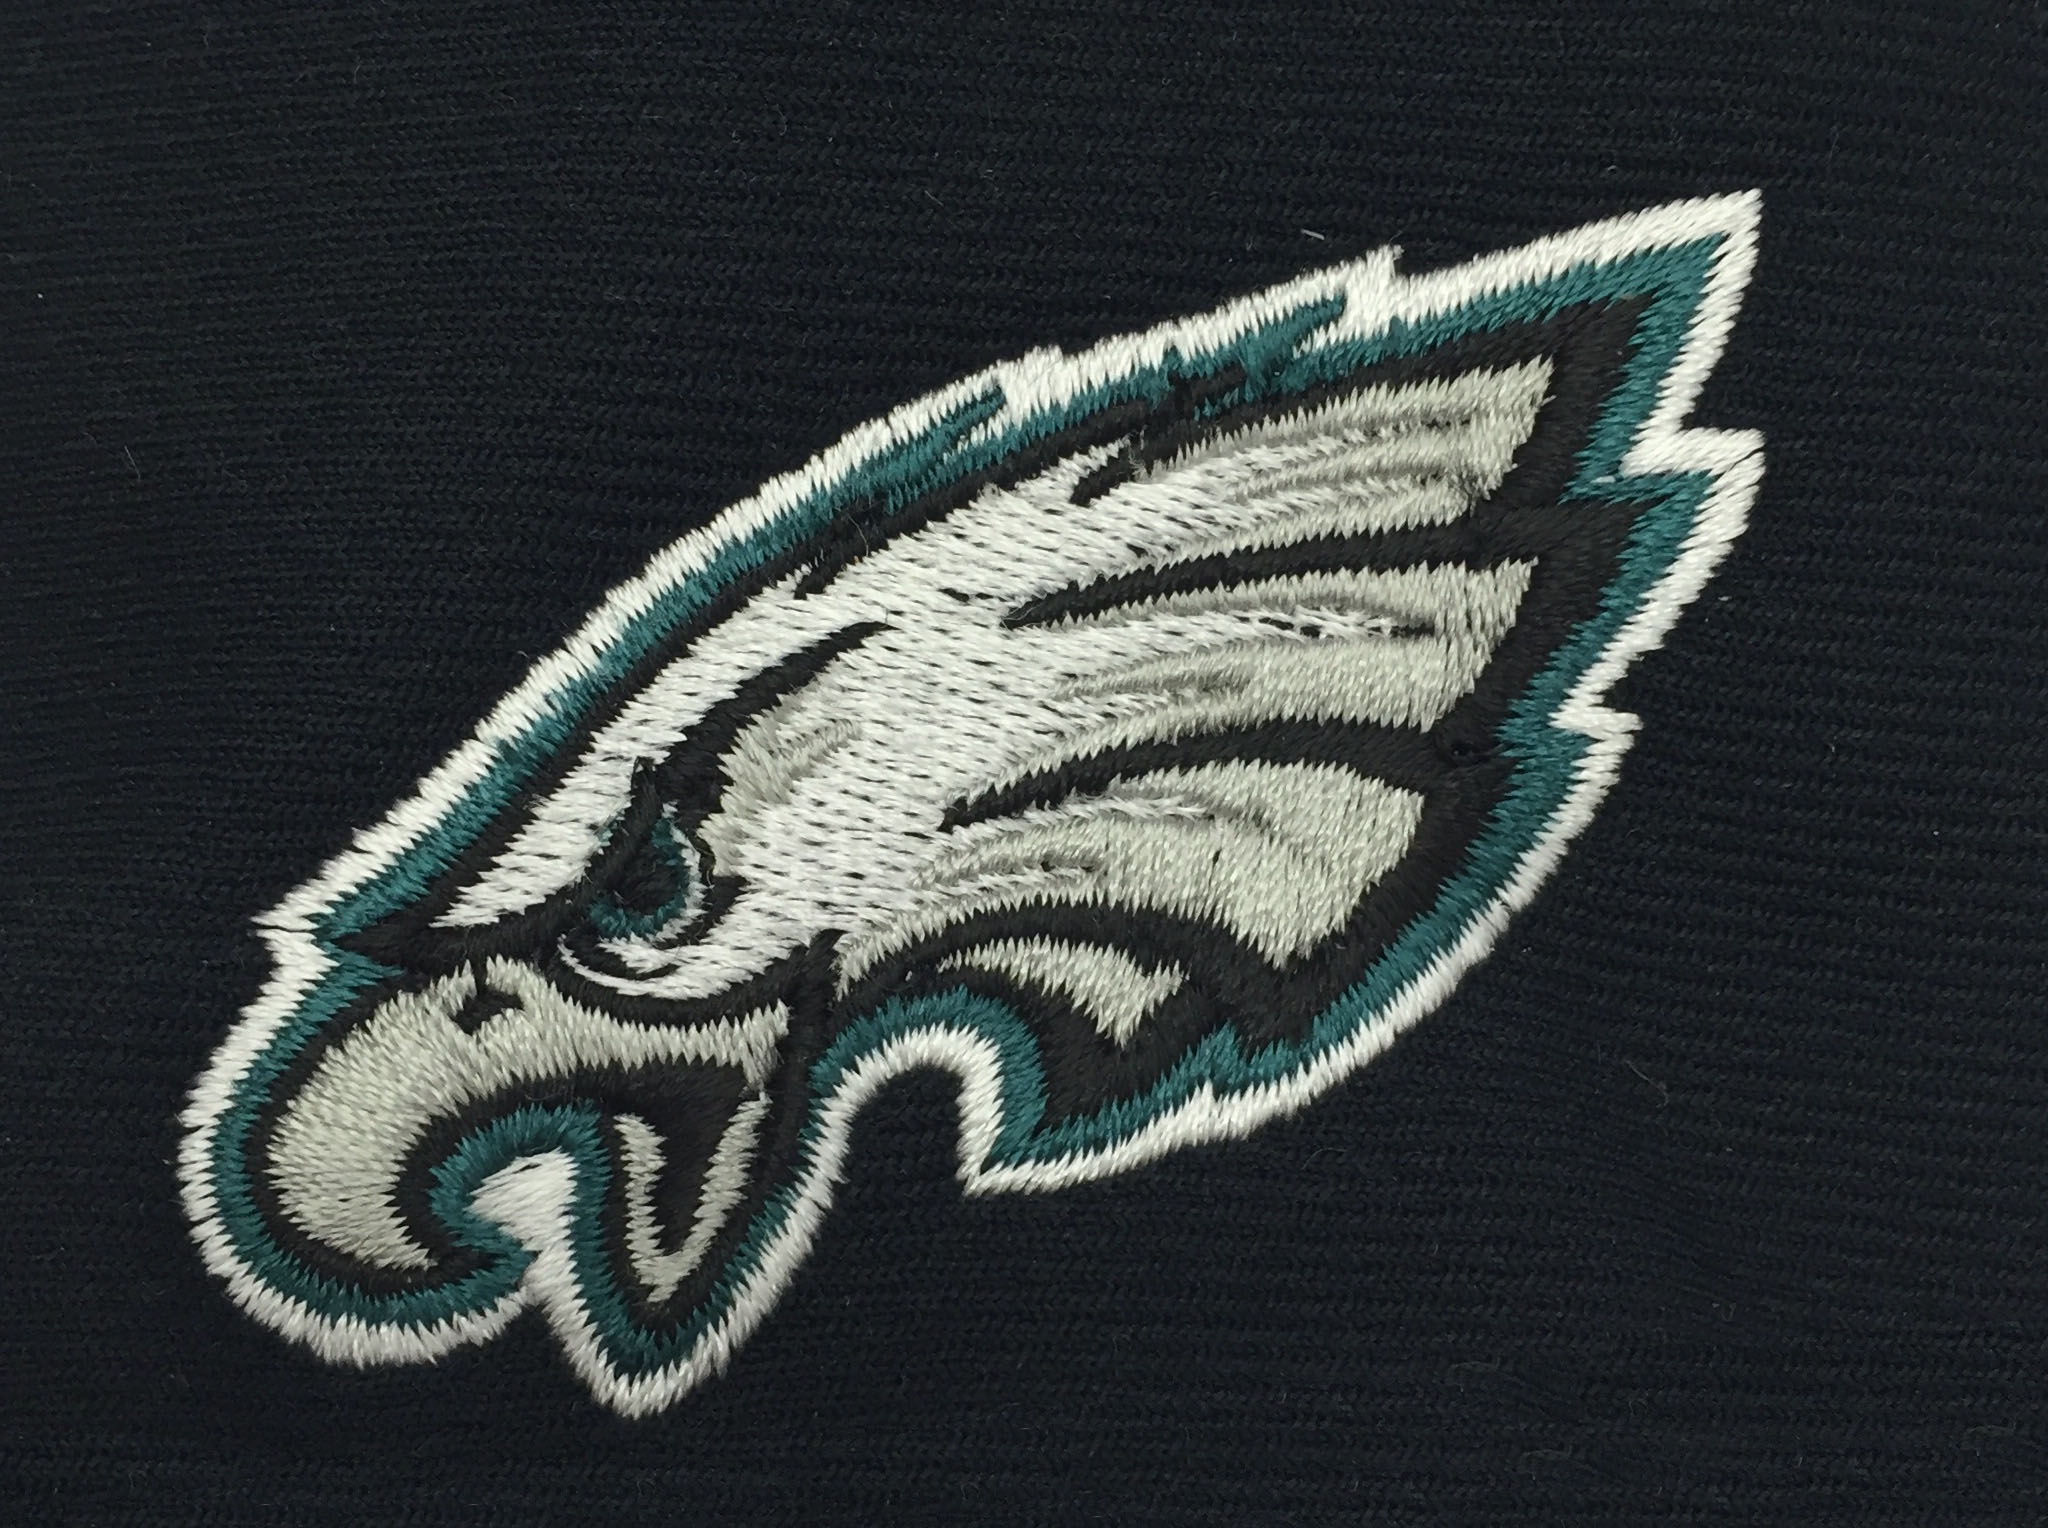 Eagles-Philadelphia-Garden State Embroidery-Cherry Chill-New Jersey-Team Apparel-Gear.JPG